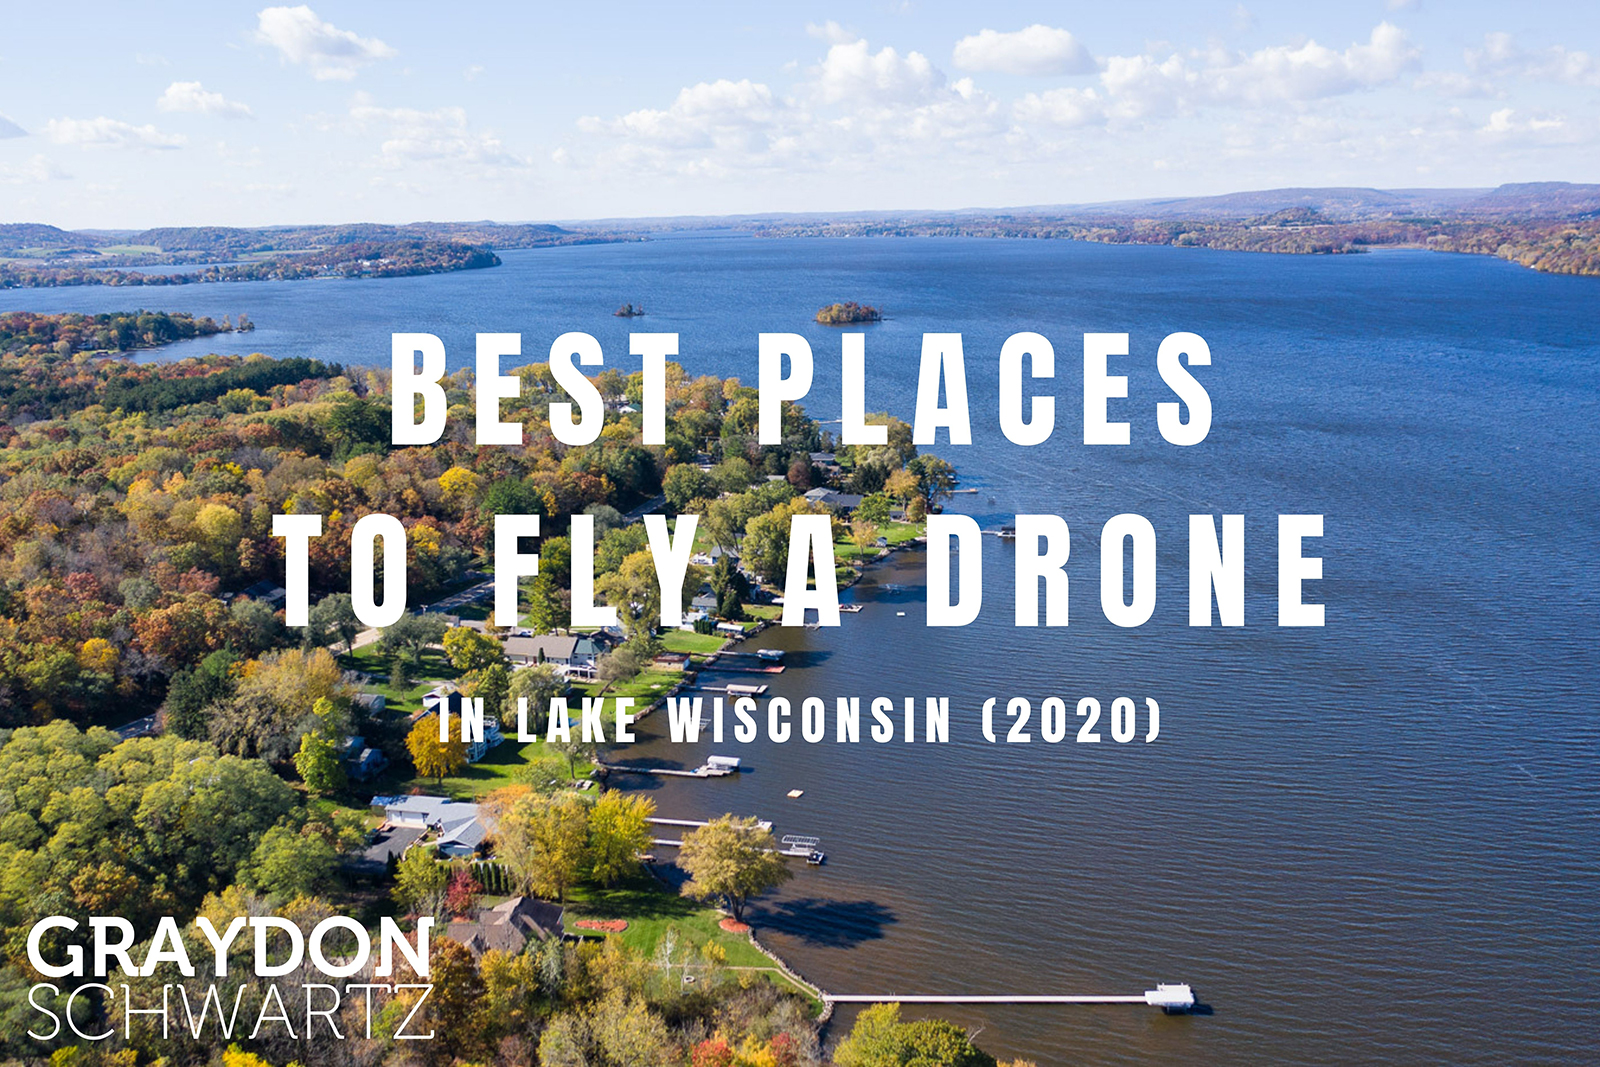 The 5 Best Places to Fly a Drone in Lake Wisconsin